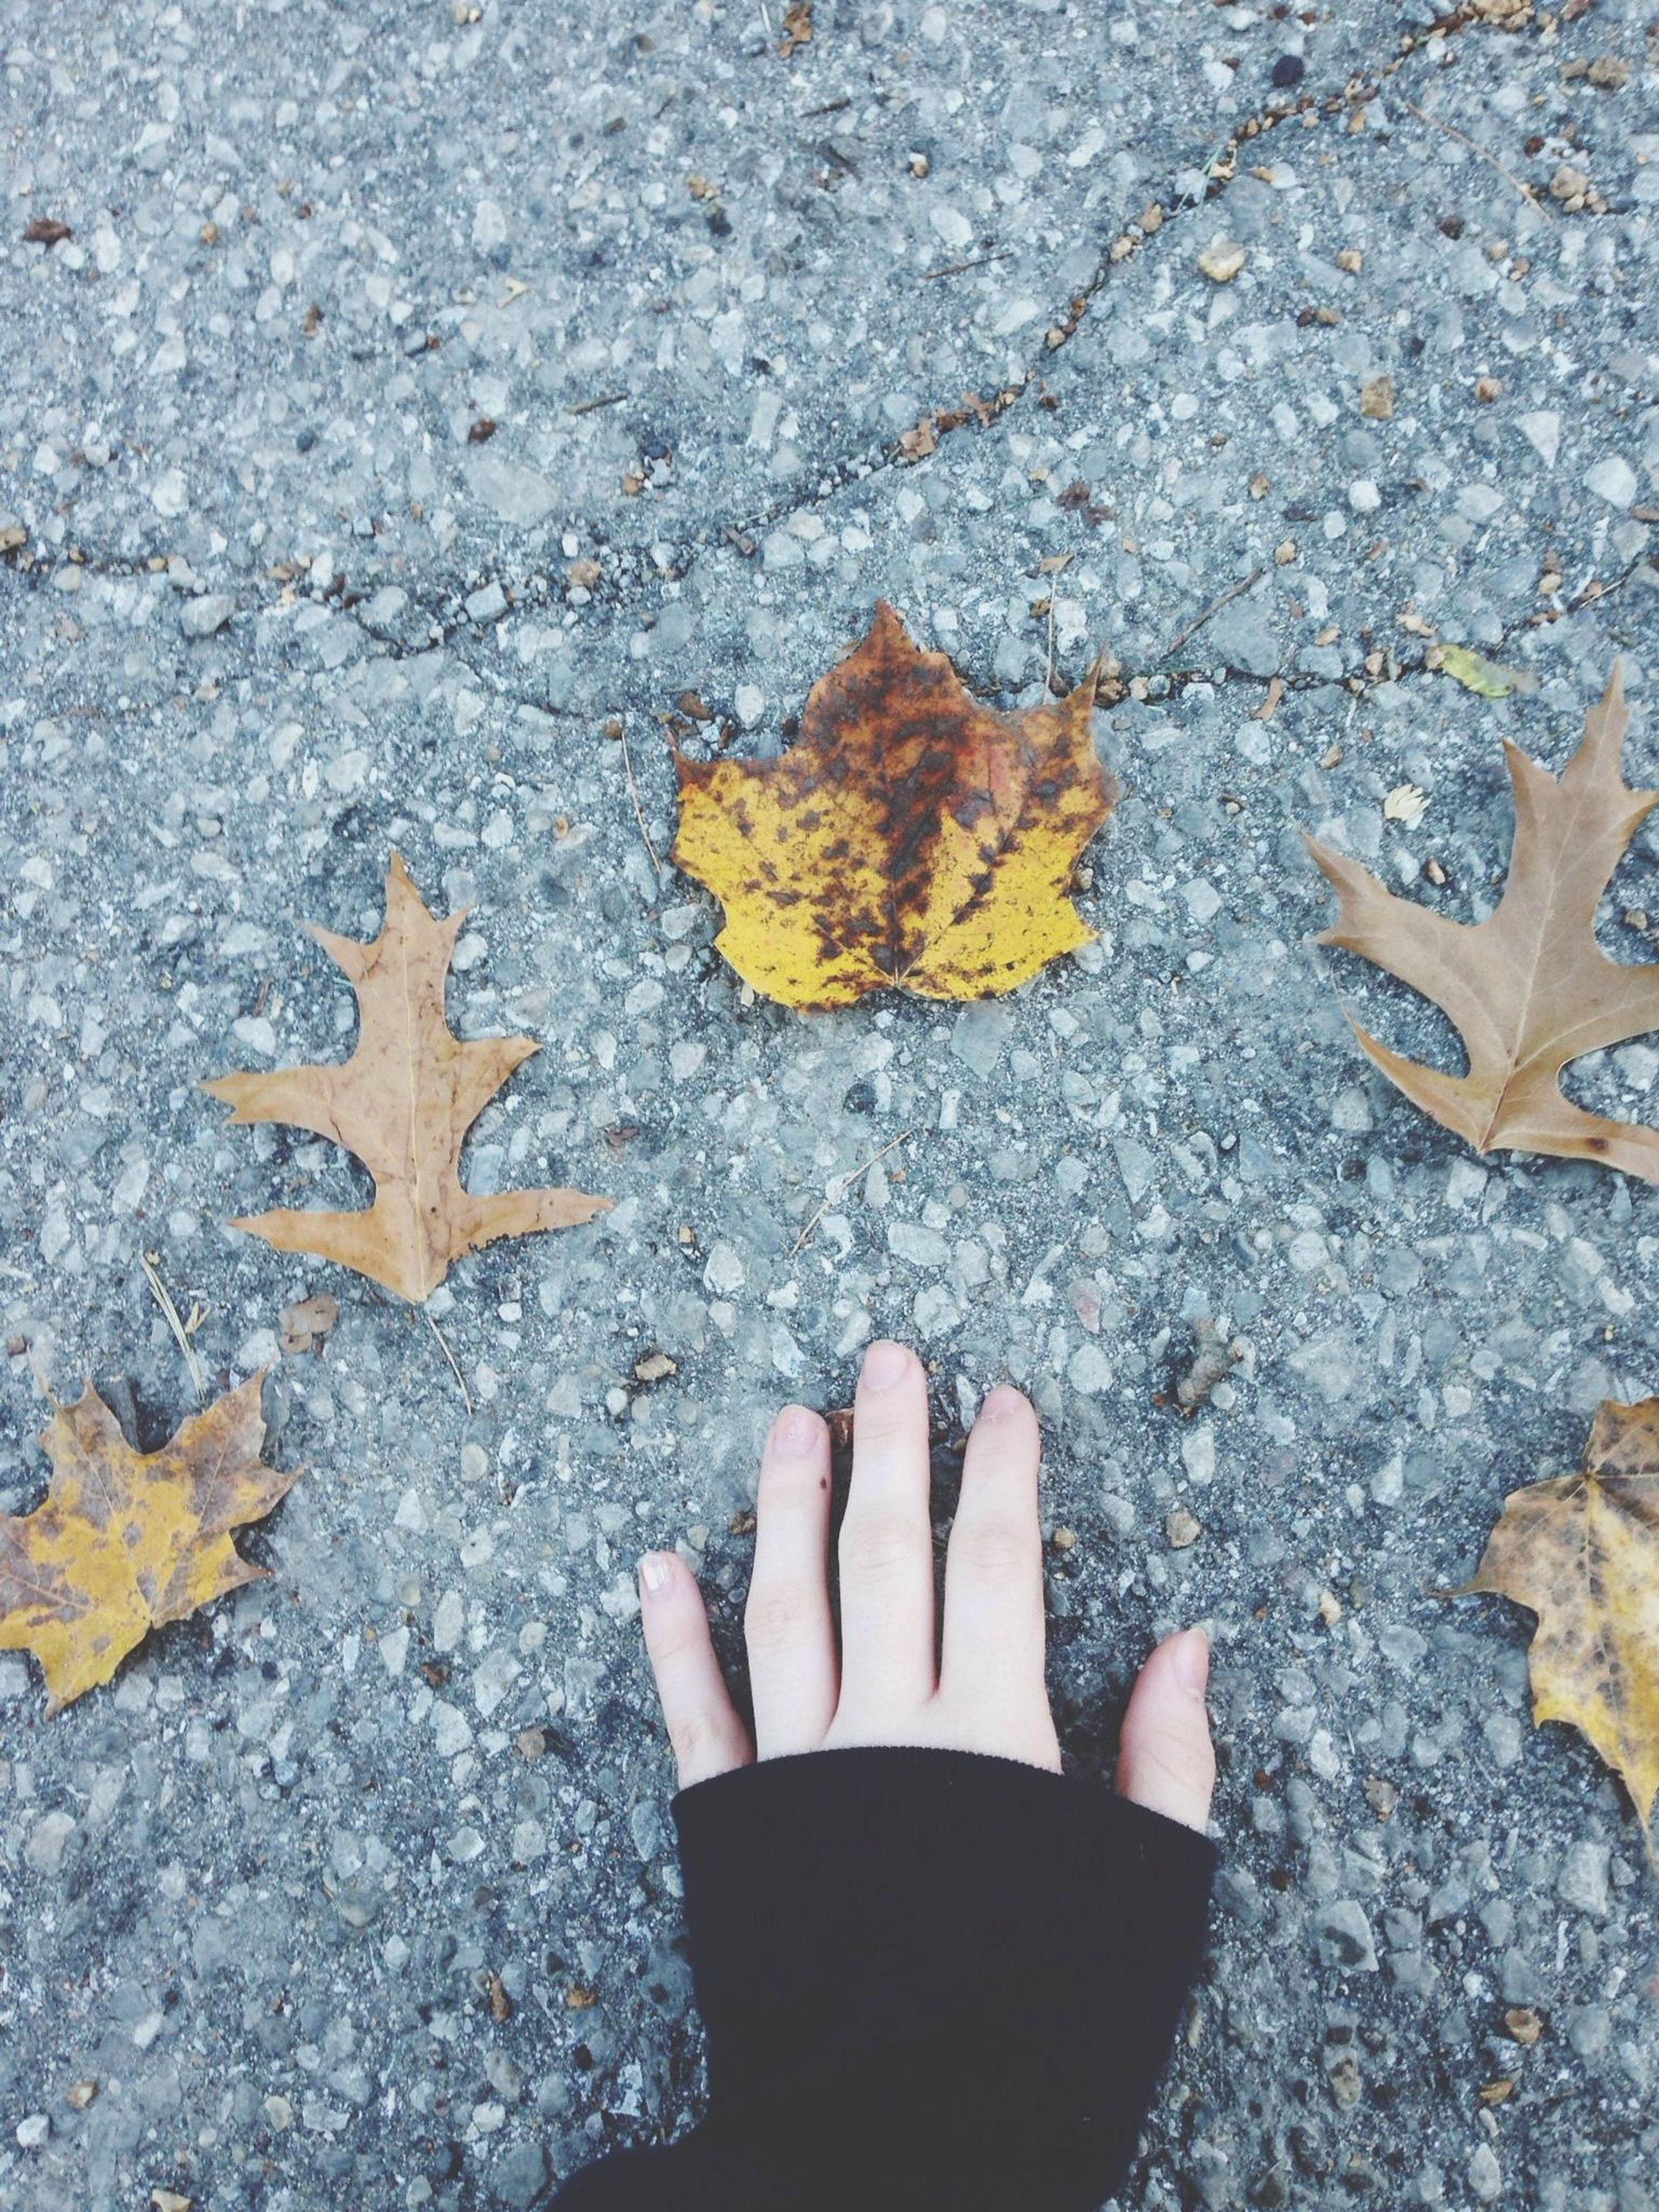 autumn, leaf, high angle view, change, street, dry, personal perspective, season, low section, leaves, asphalt, fallen, person, unrecognizable person, shoe, standing, directly above